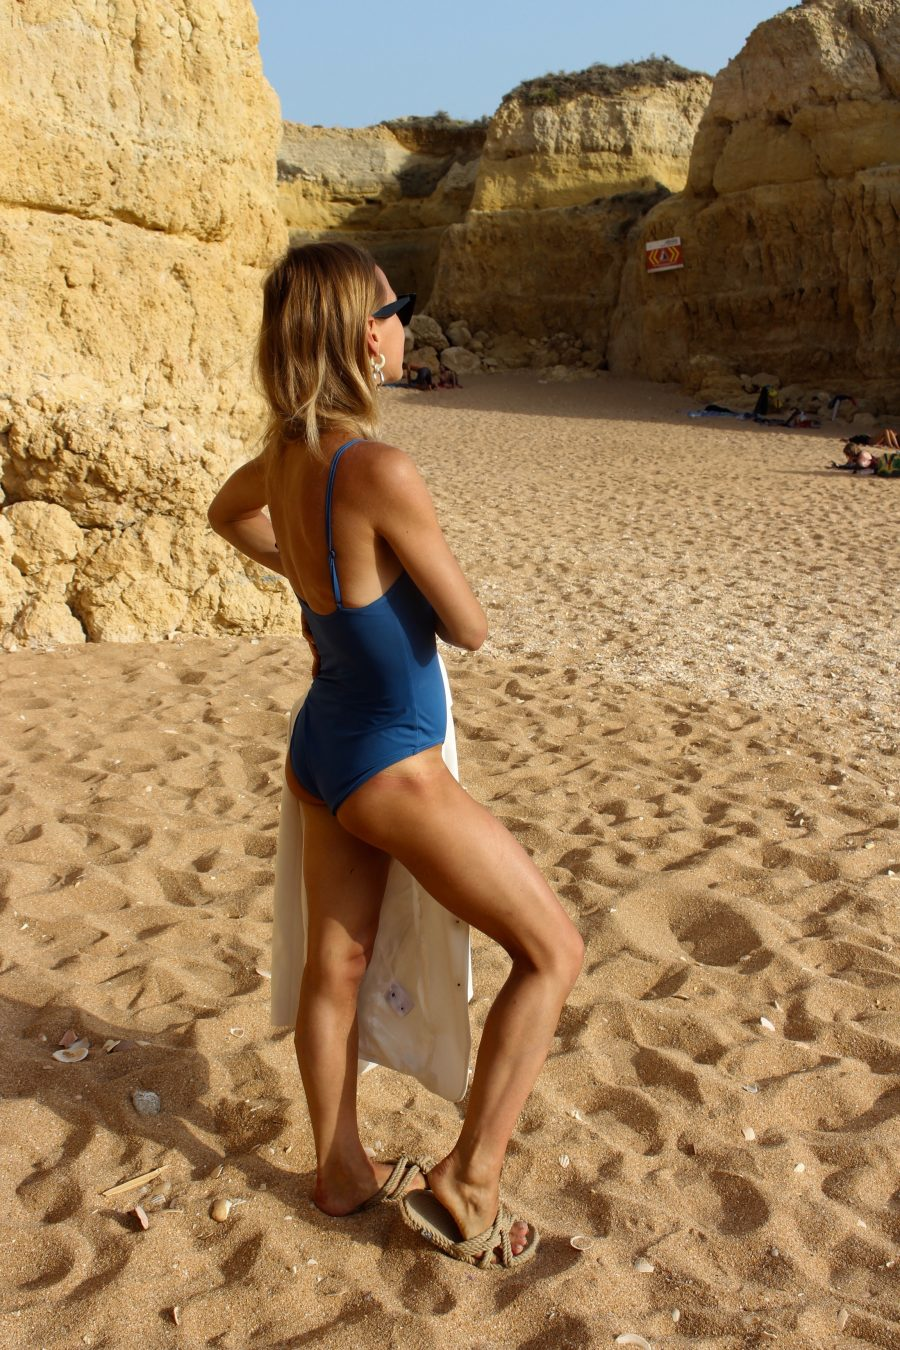 The HER LINE Blue Swimsuit